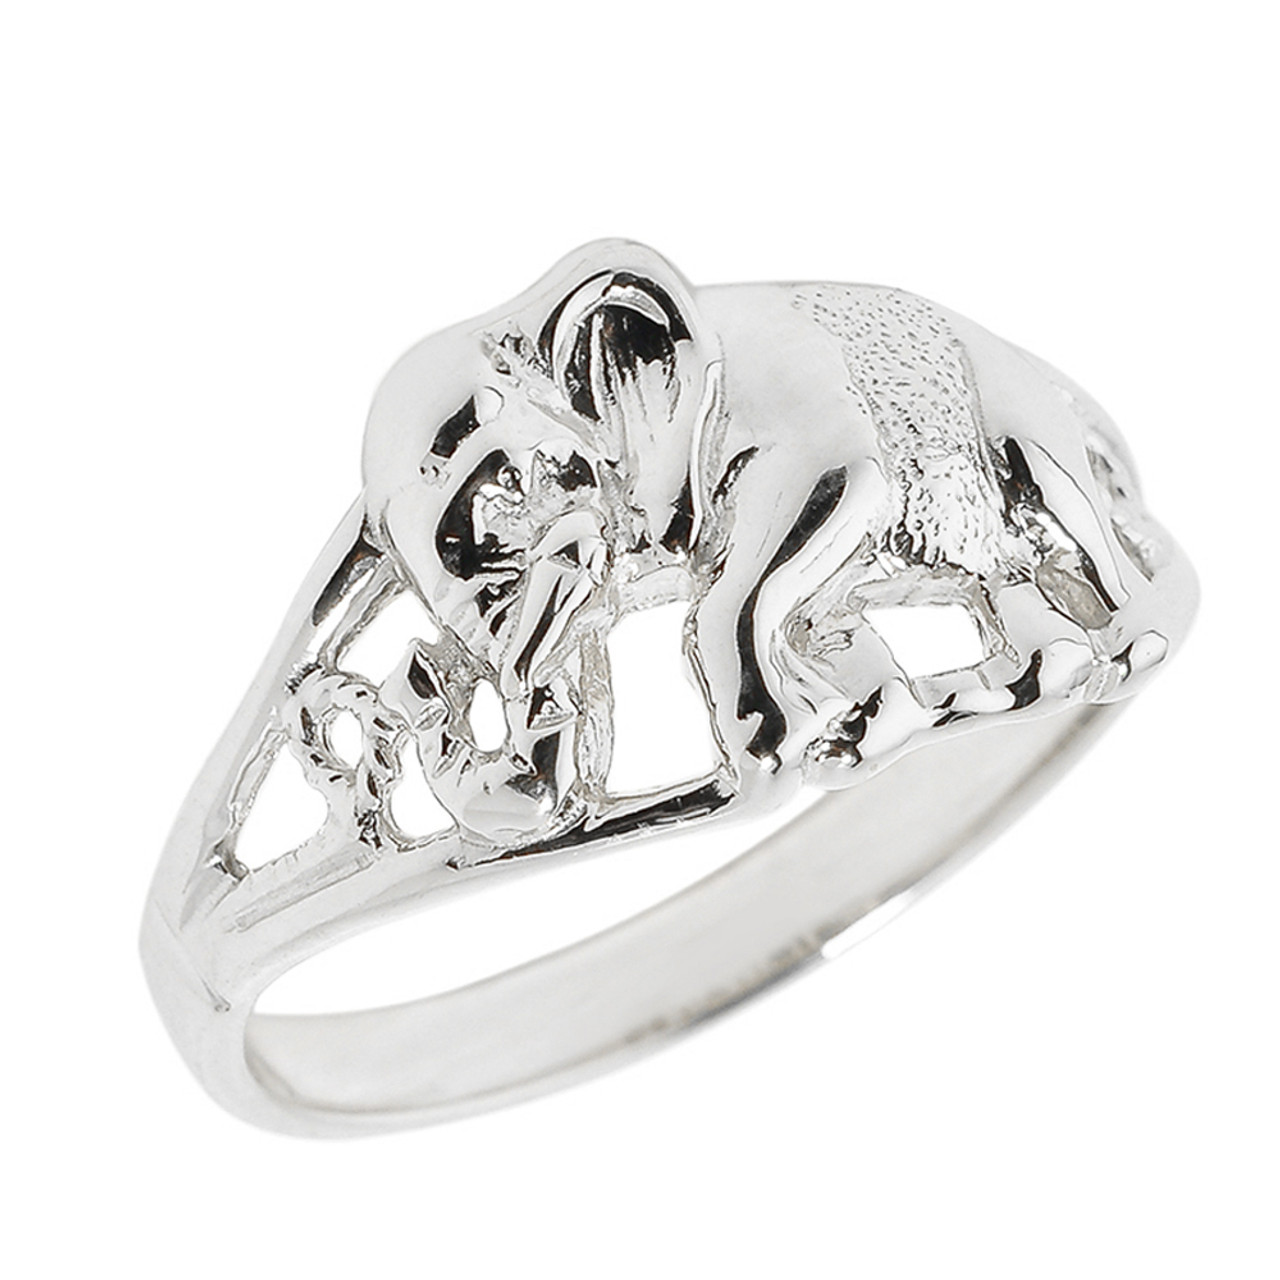 zm ring to silver mv sterling hover tw kaystore engagement kay zoom diamond elephant gold en carat rings